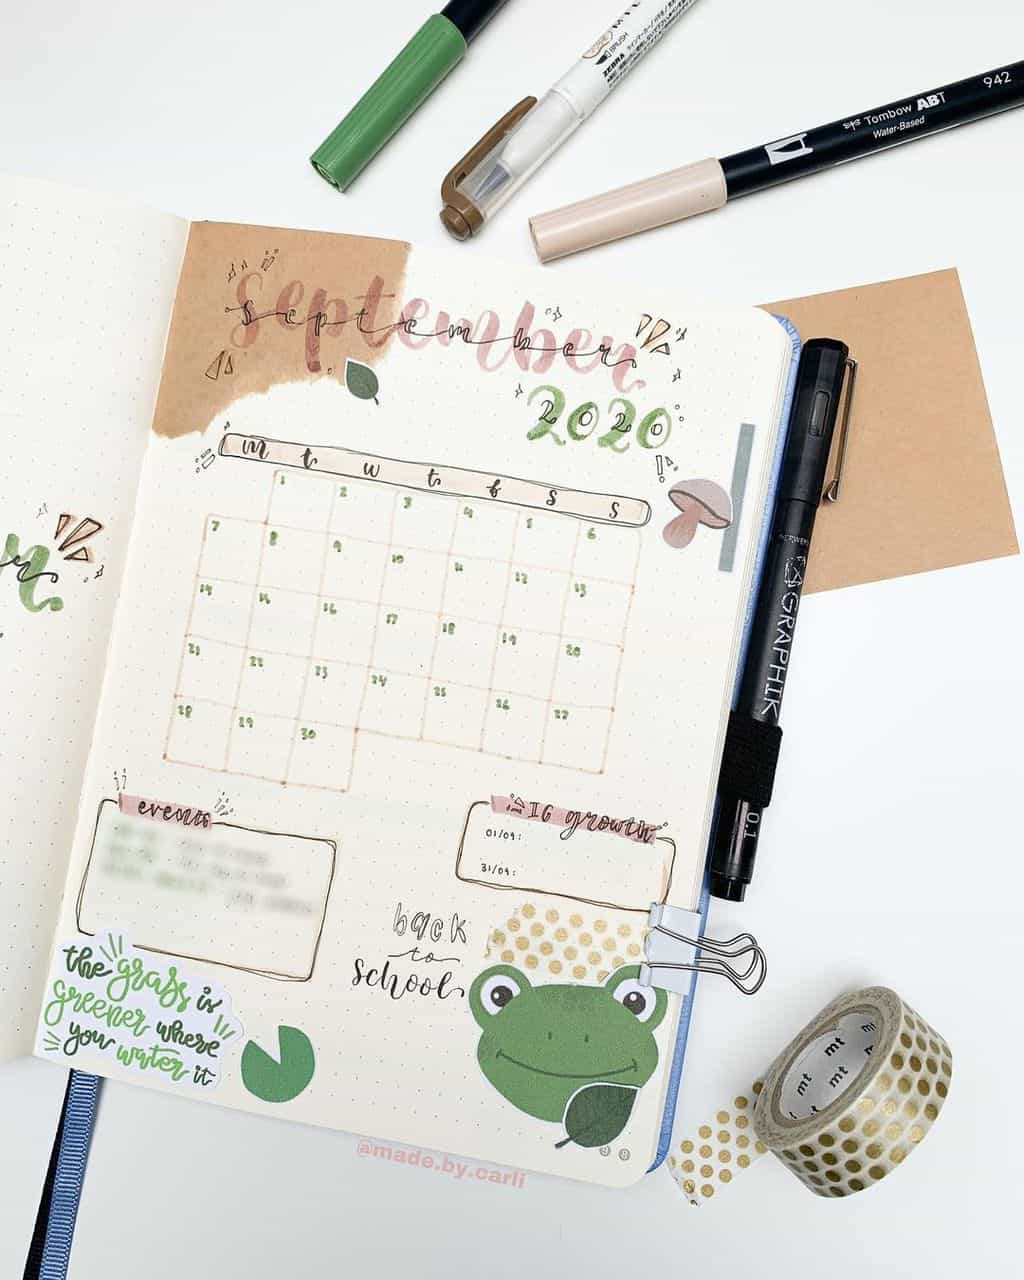 Kraft Paper Fall Bullet Journal Inspirations - monthly log by @made.by.carli | Masha Plans